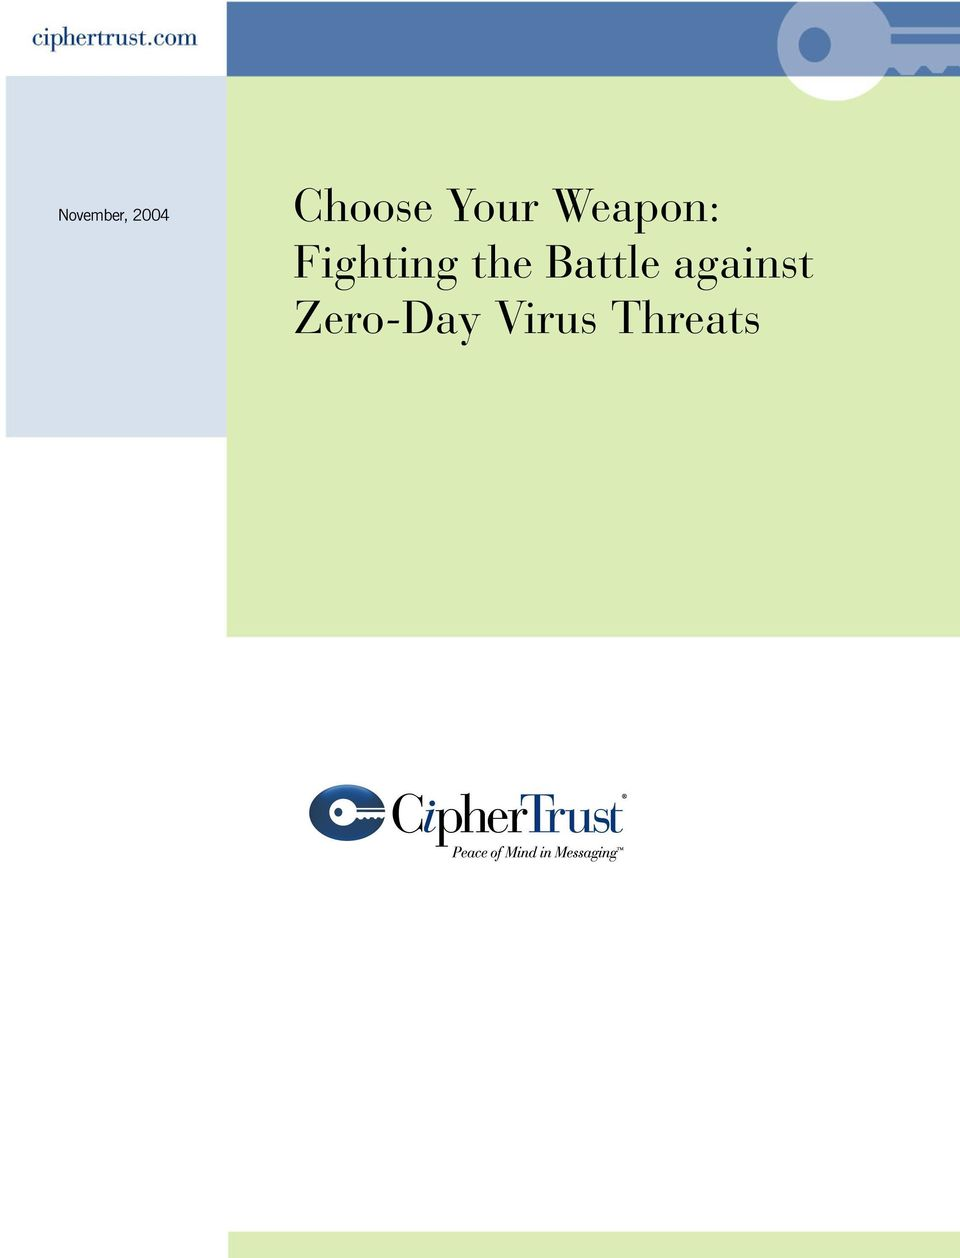 November, 2004  against Zero-Day Virus